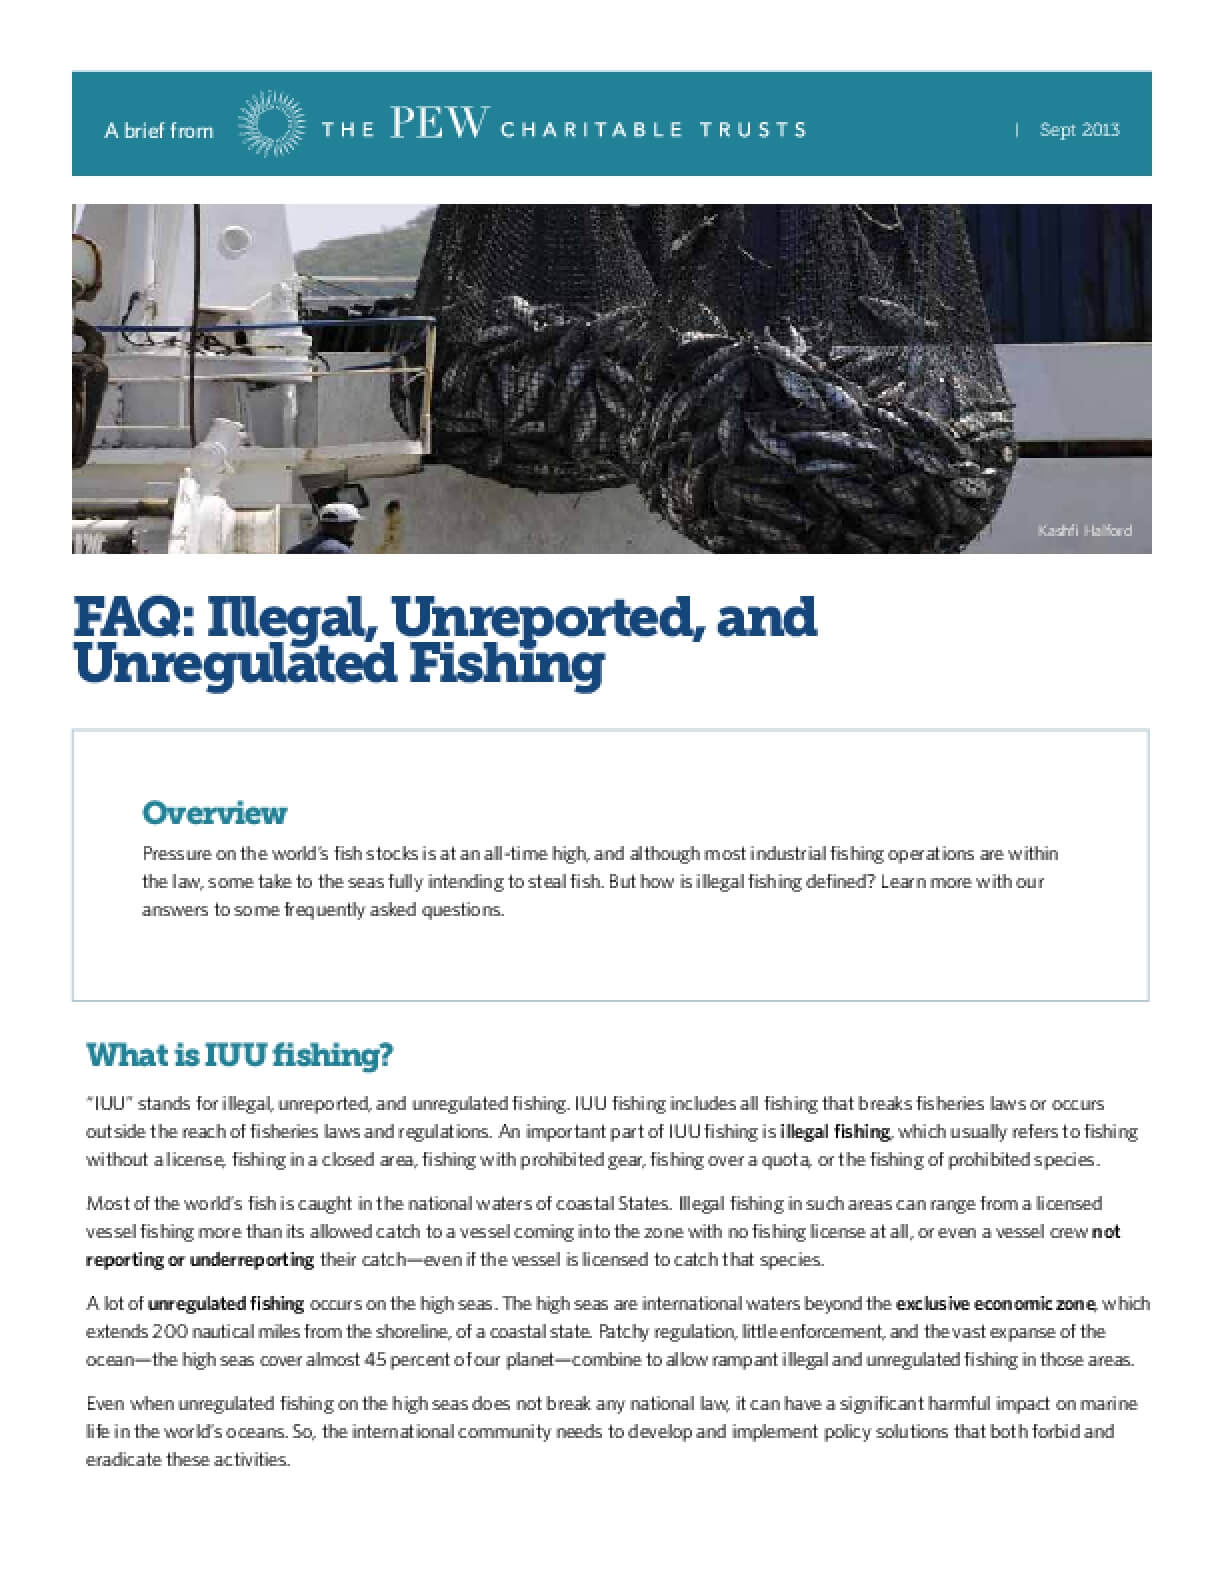 FAQ: Illegal, Unreported, and Unregulated Fishing